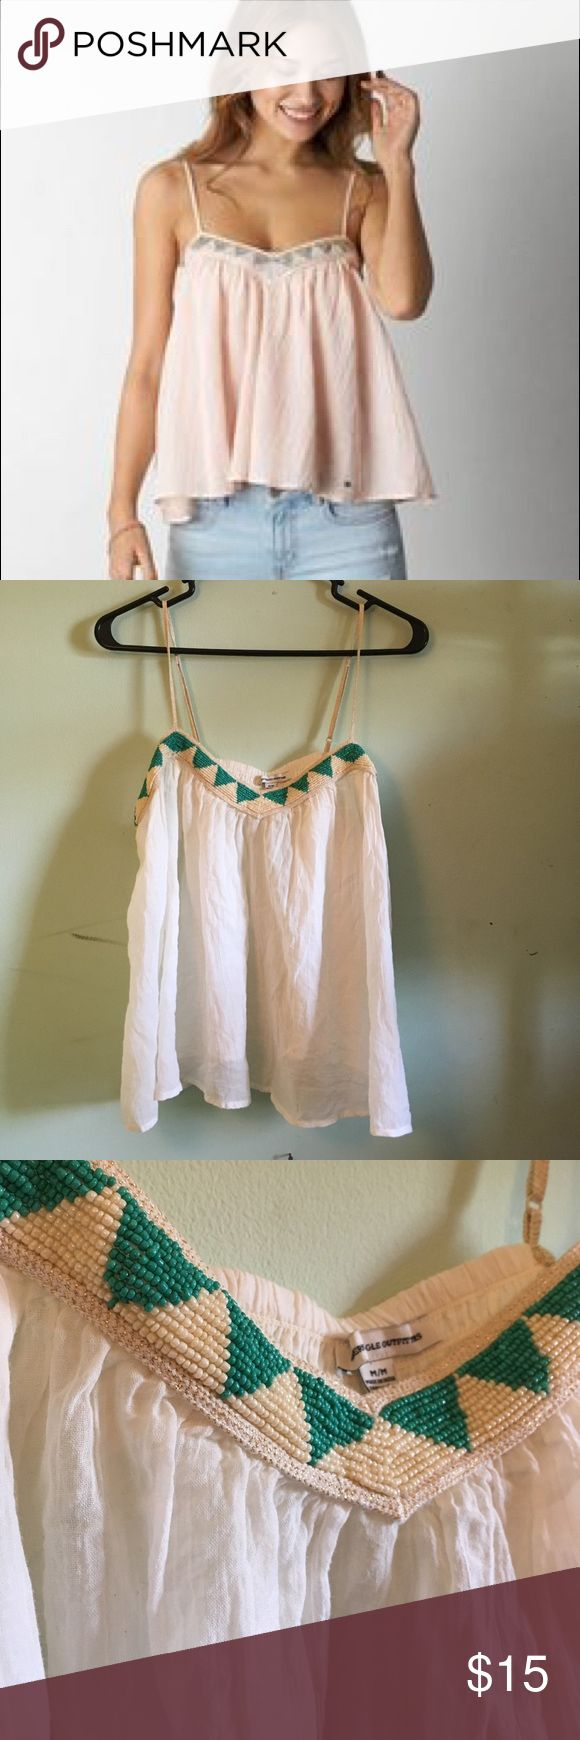 AE White Beaded Camisole American Eagle white camisole/Tank with teal and cream white beads. Flowy and comfortable. Adjustable pink sparkley straps. See through so be sure to wear a white bra or something underneath. Model is wearing same item in pink! Size medium. American Eagle Outfitters Tops Camisoles